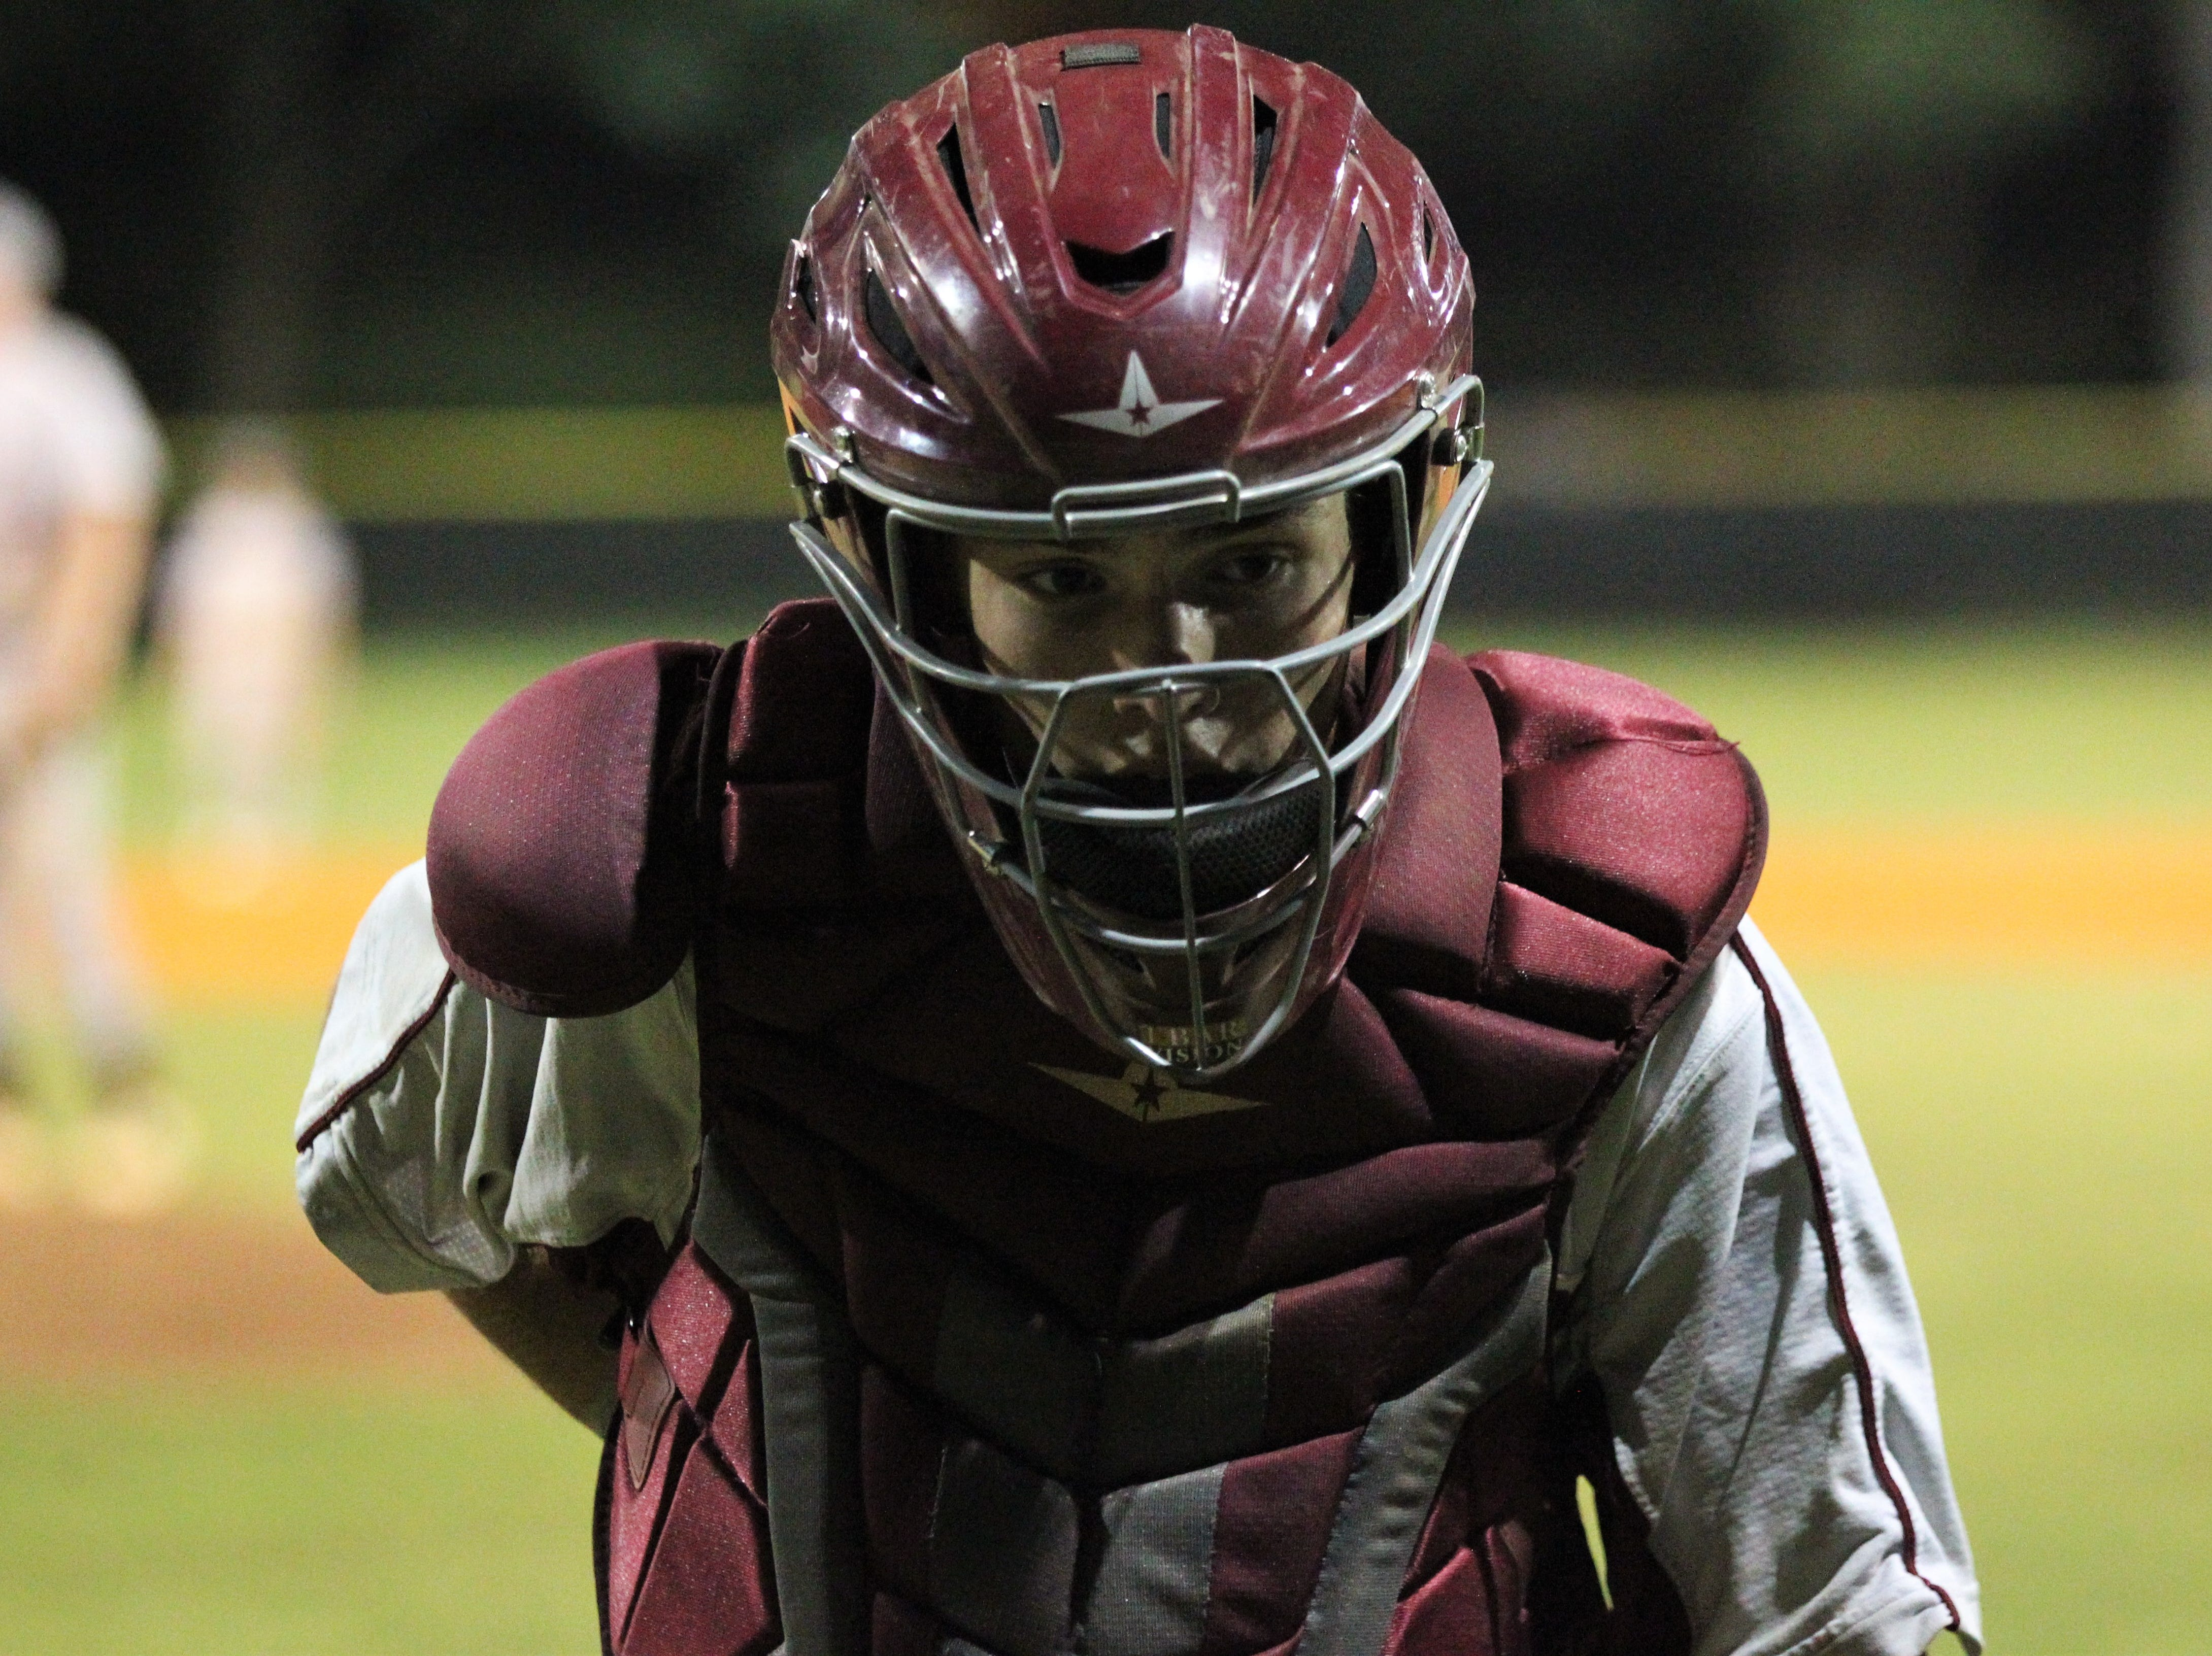 Chiles freshman Jaxson West takes over at catcher as Lincoln baseball beat Chiles 5-4  in 10 innings during a District 2-8A championship game on Thursday, May 9, 2019.